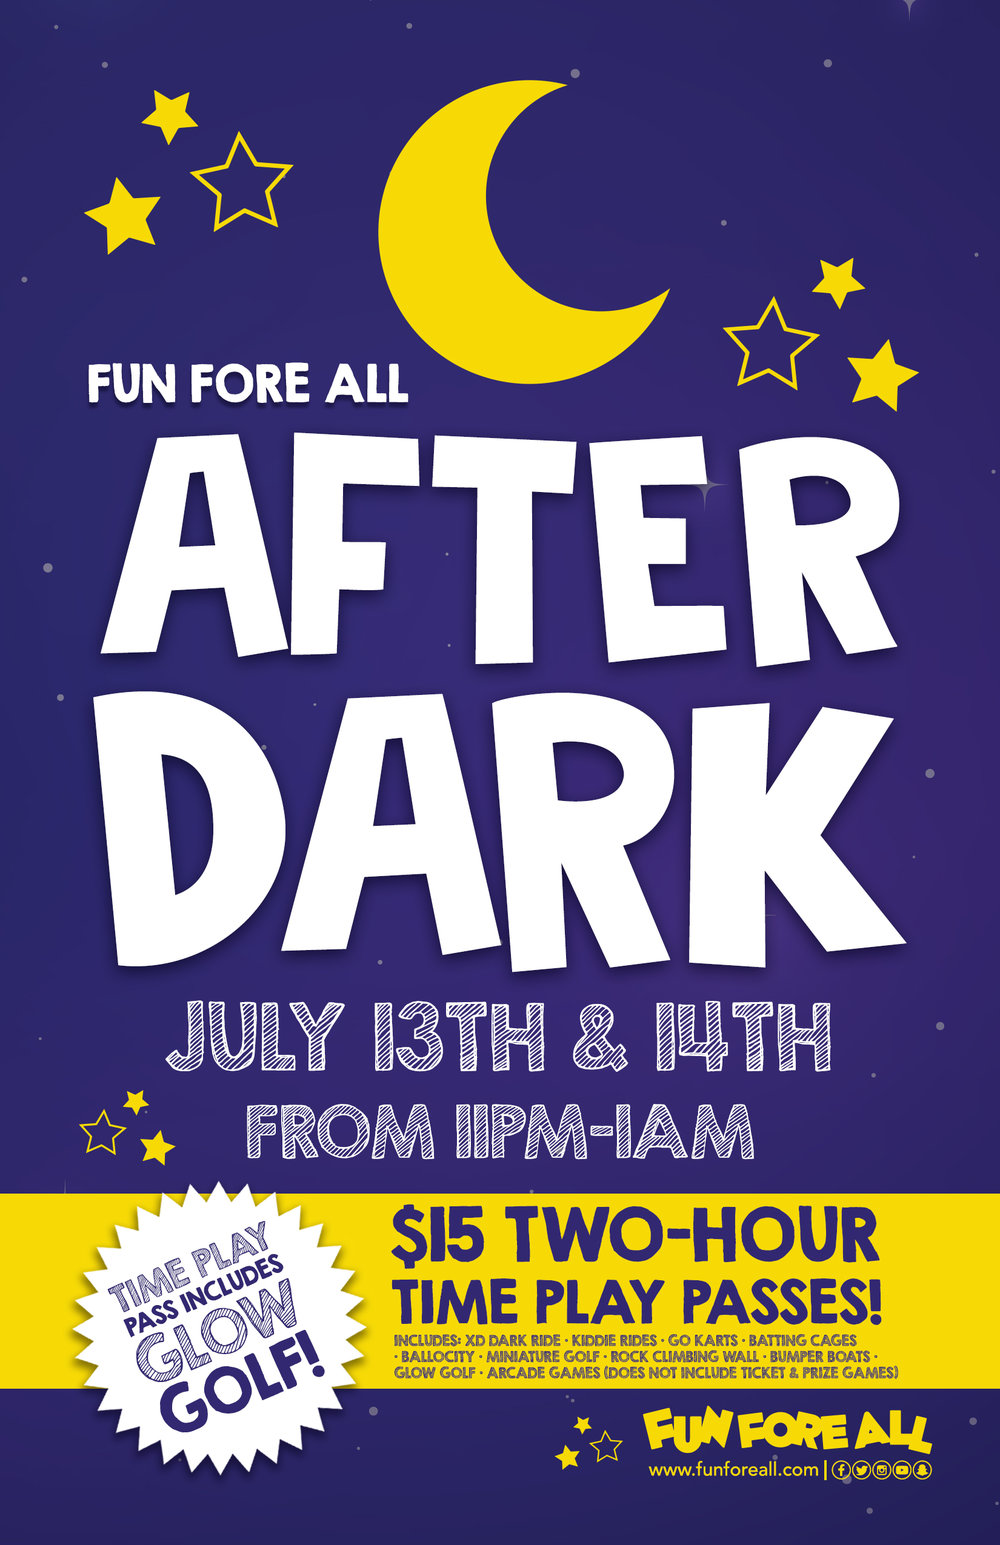 AFTER DARK 2018 FLYER